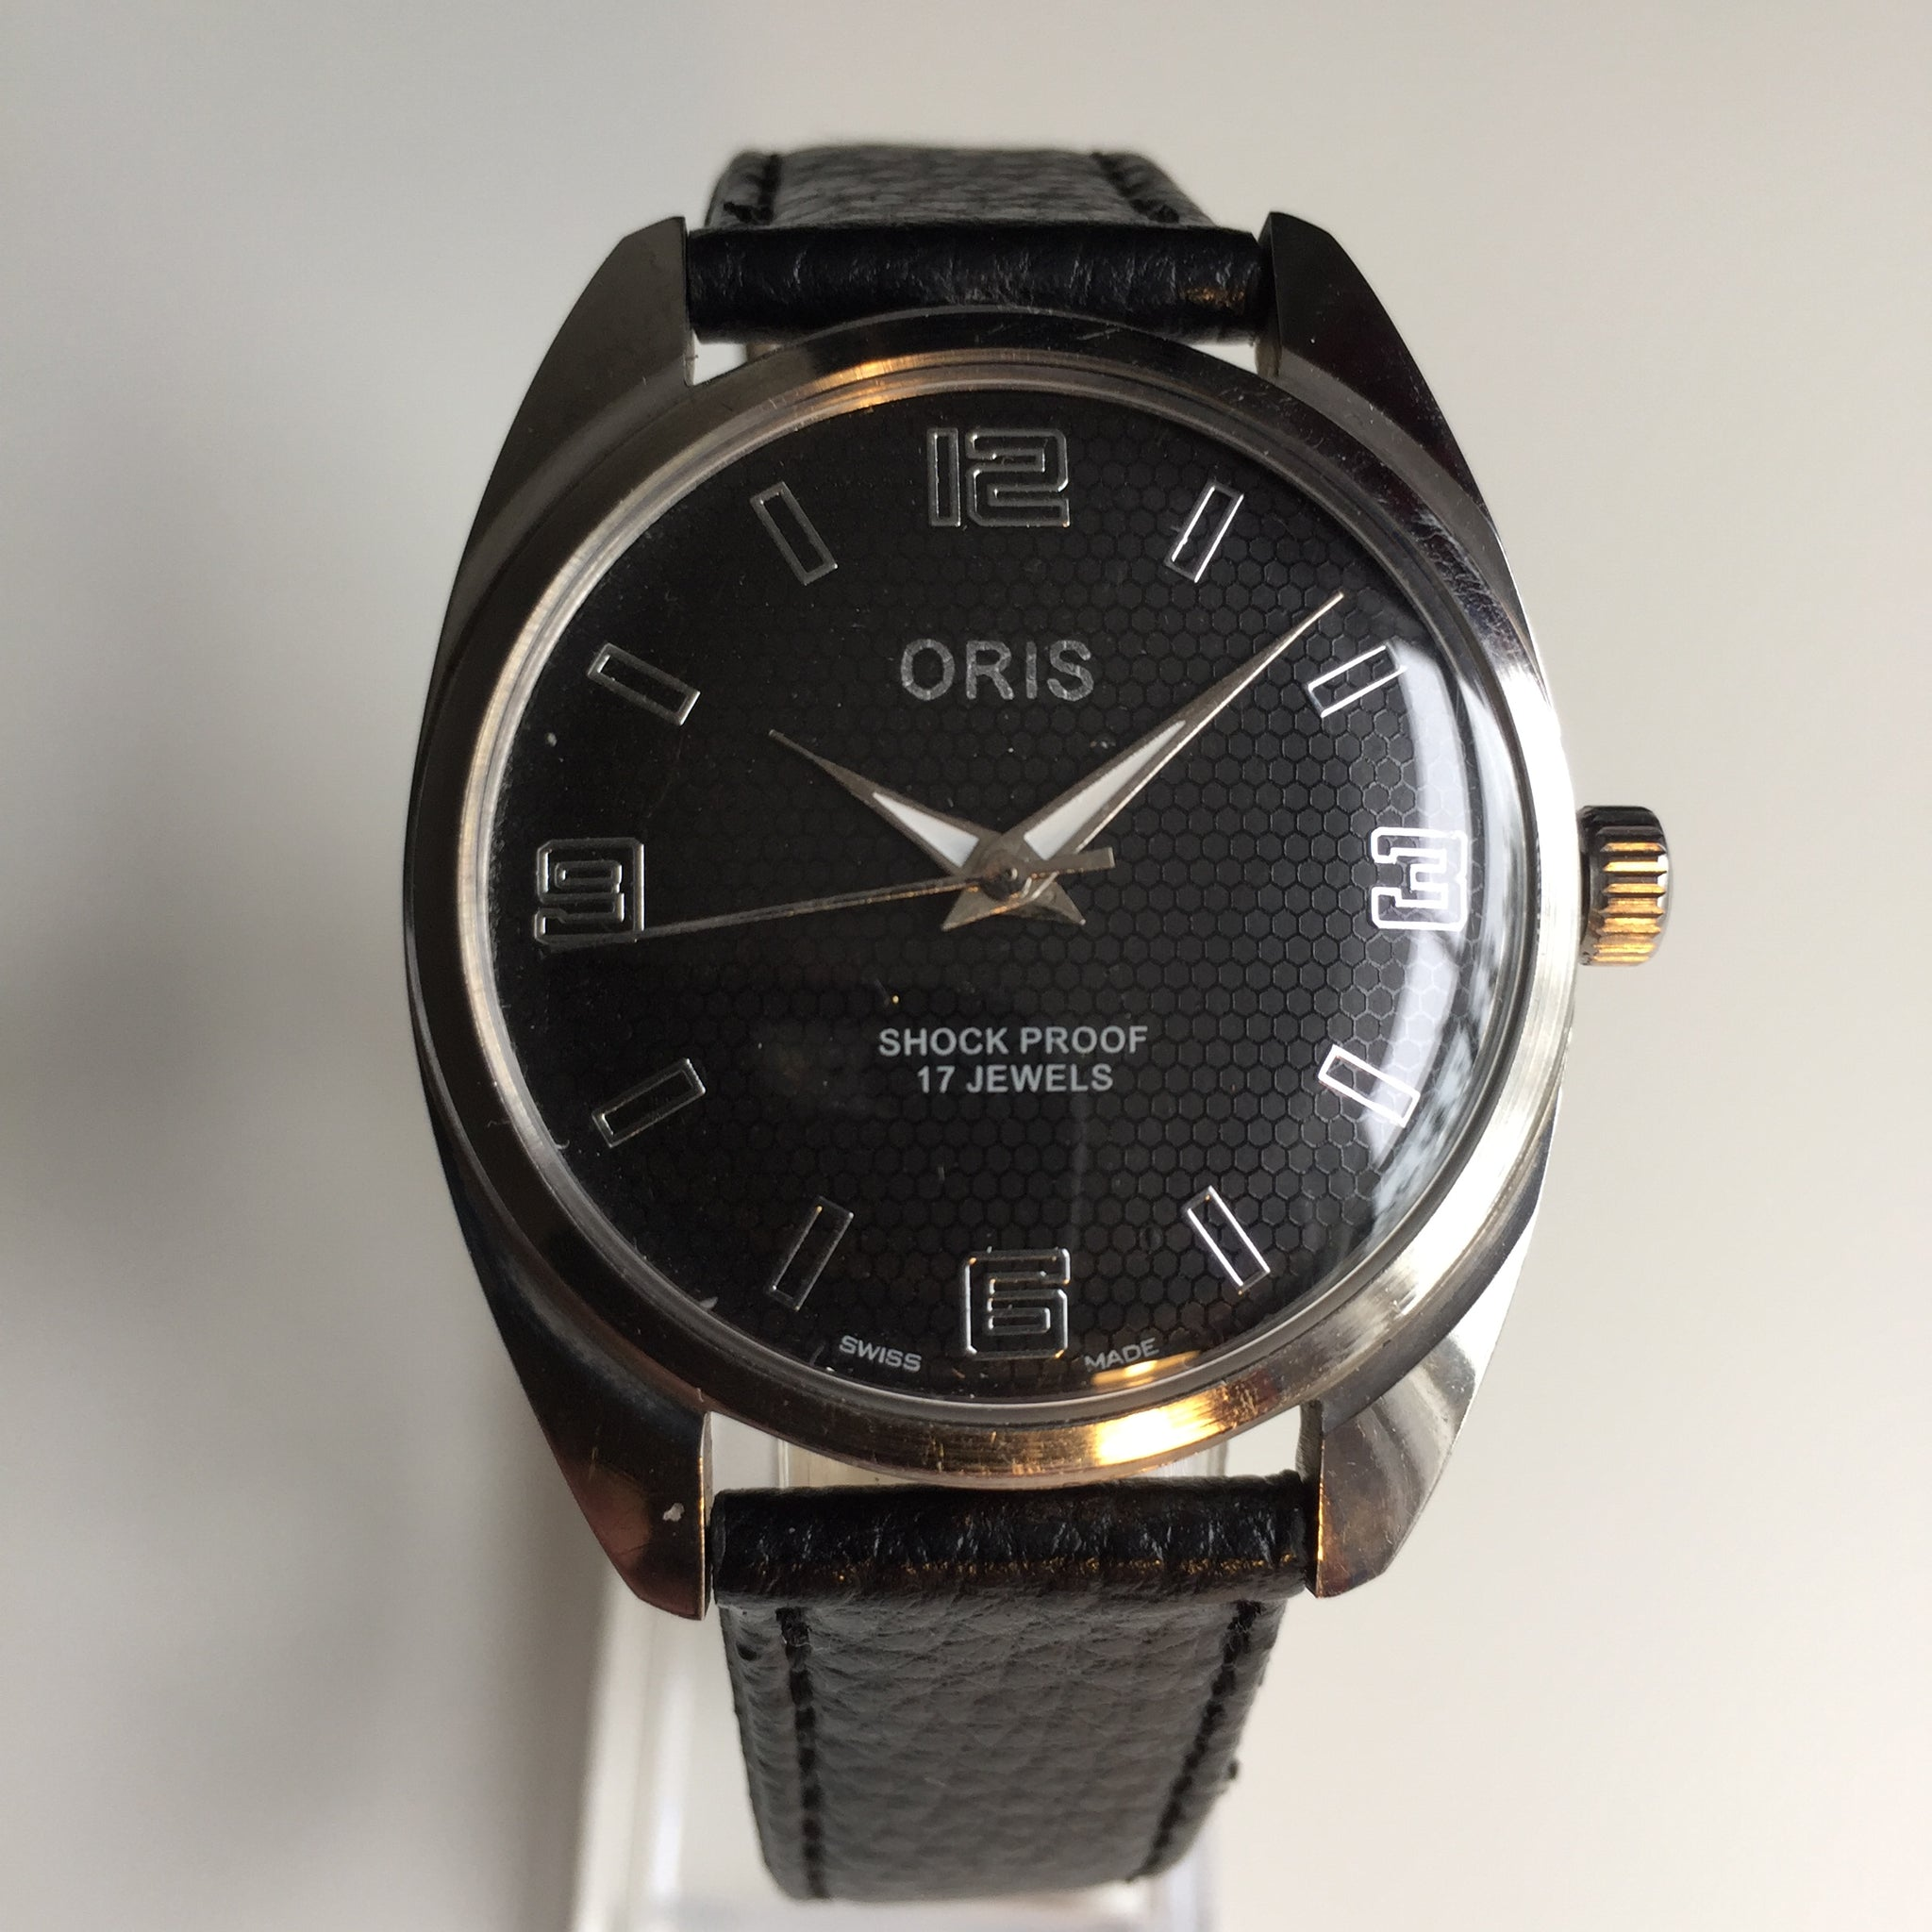 watches story oris watch high of swiss made that t bank week the break won quality gq